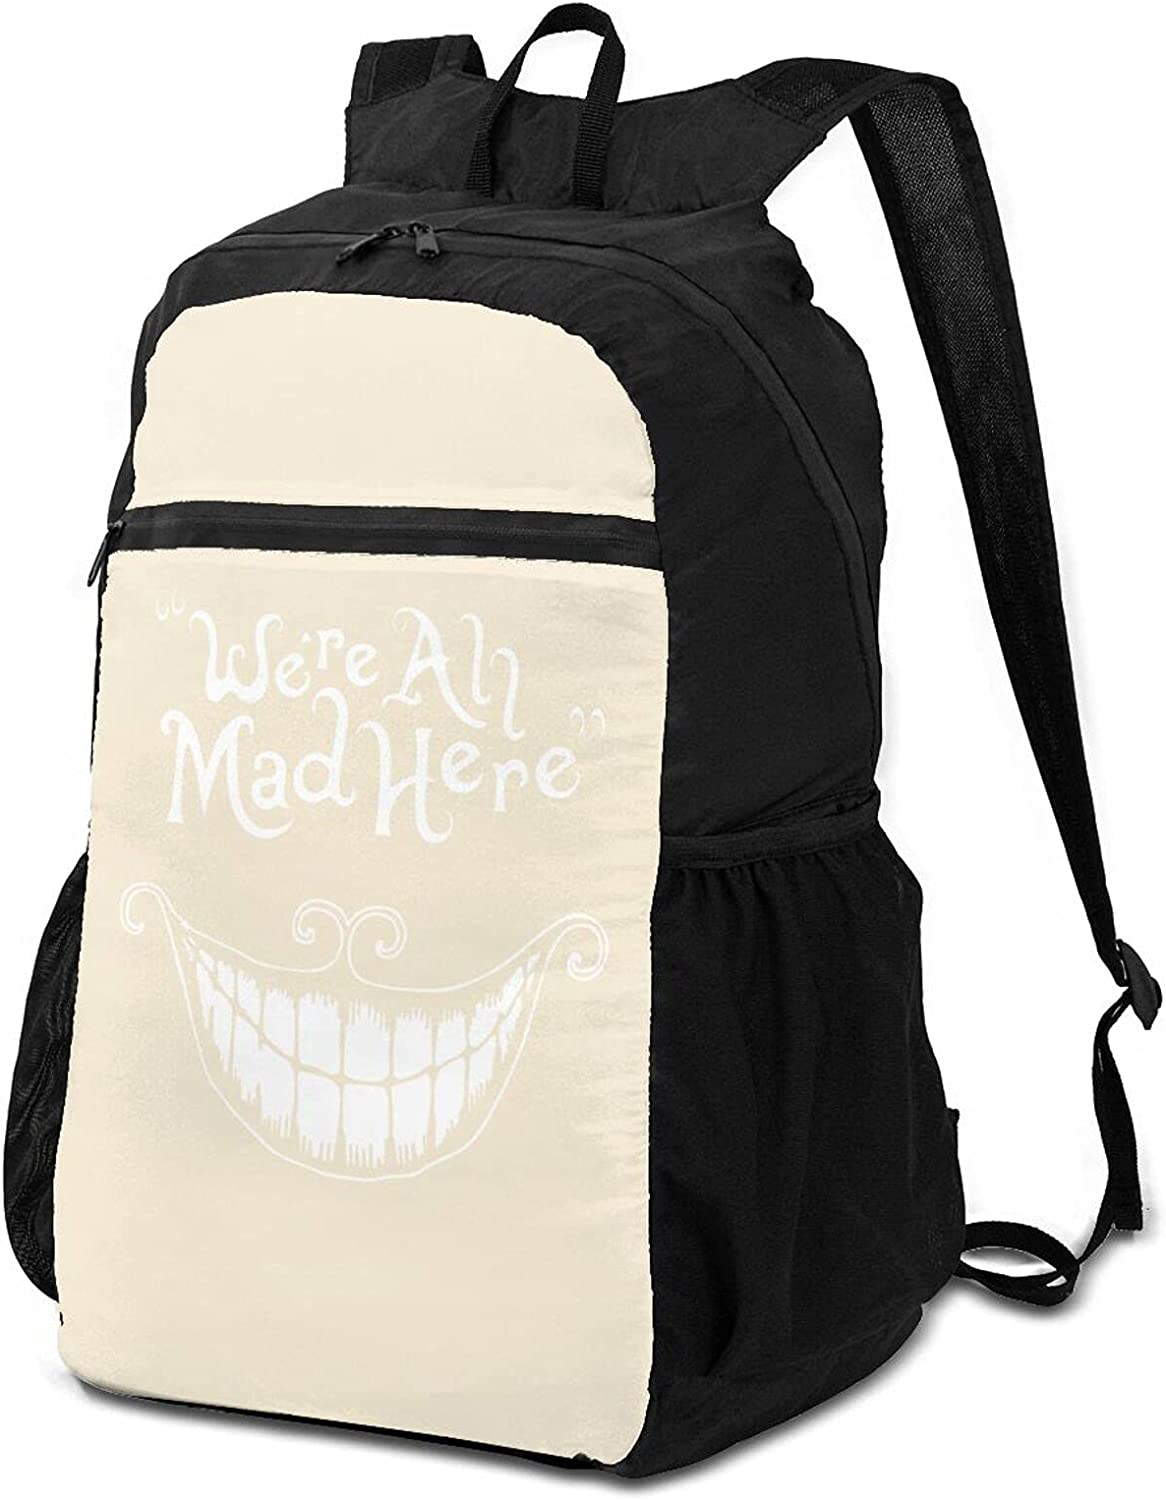 Philadelphia Mall Omaha Mall We Are All Mad Here Unisex Foldable Ultra Resi Water Lightweight